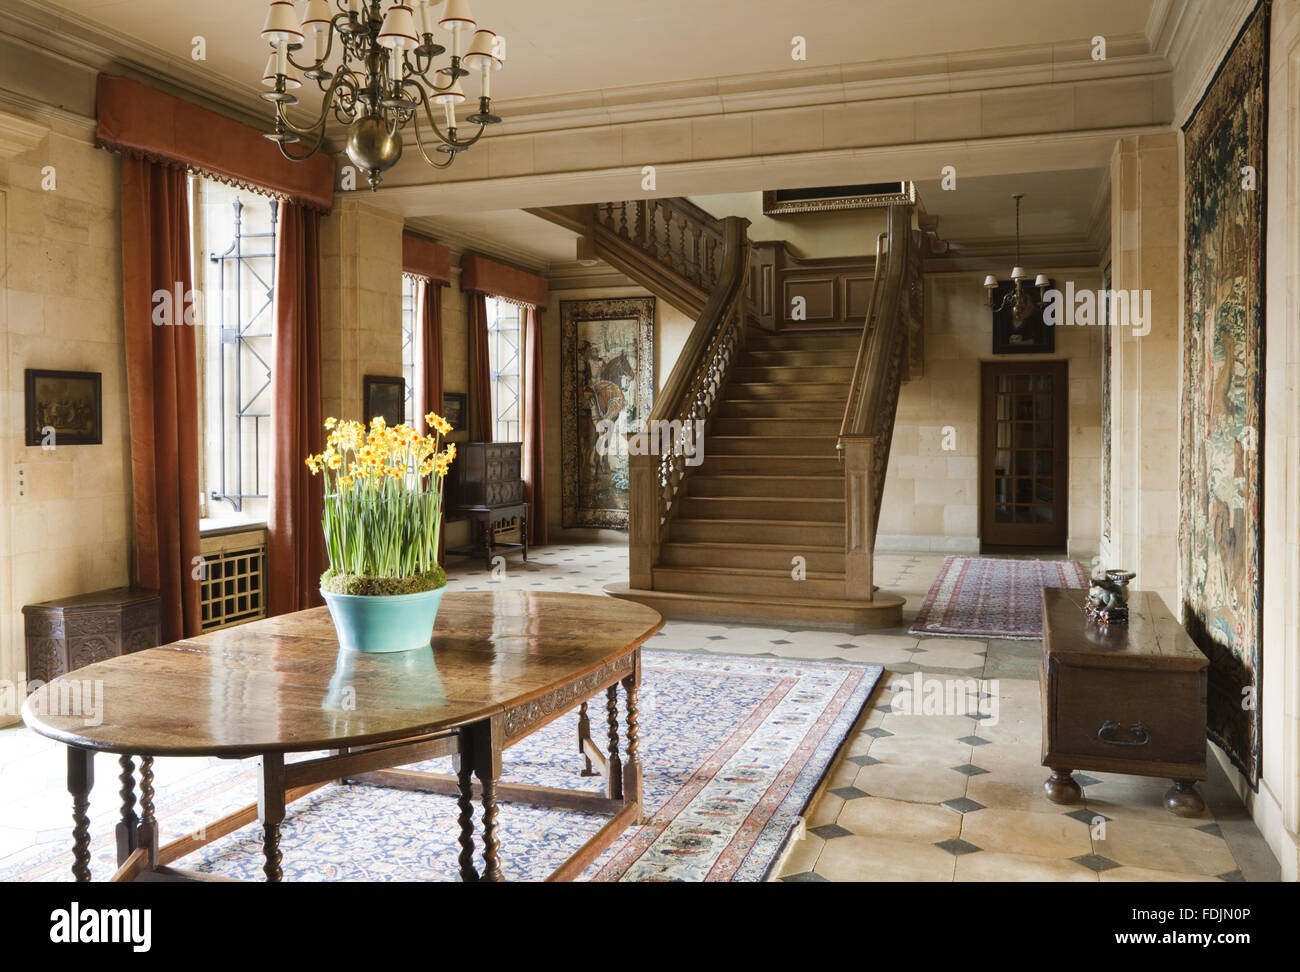 The Hall At Upton House, Warwickshire. The Interior Of The House Was  Remodelled In 1927 9 By The Architect Percy Morley Horder, When The  Staircase Was ...